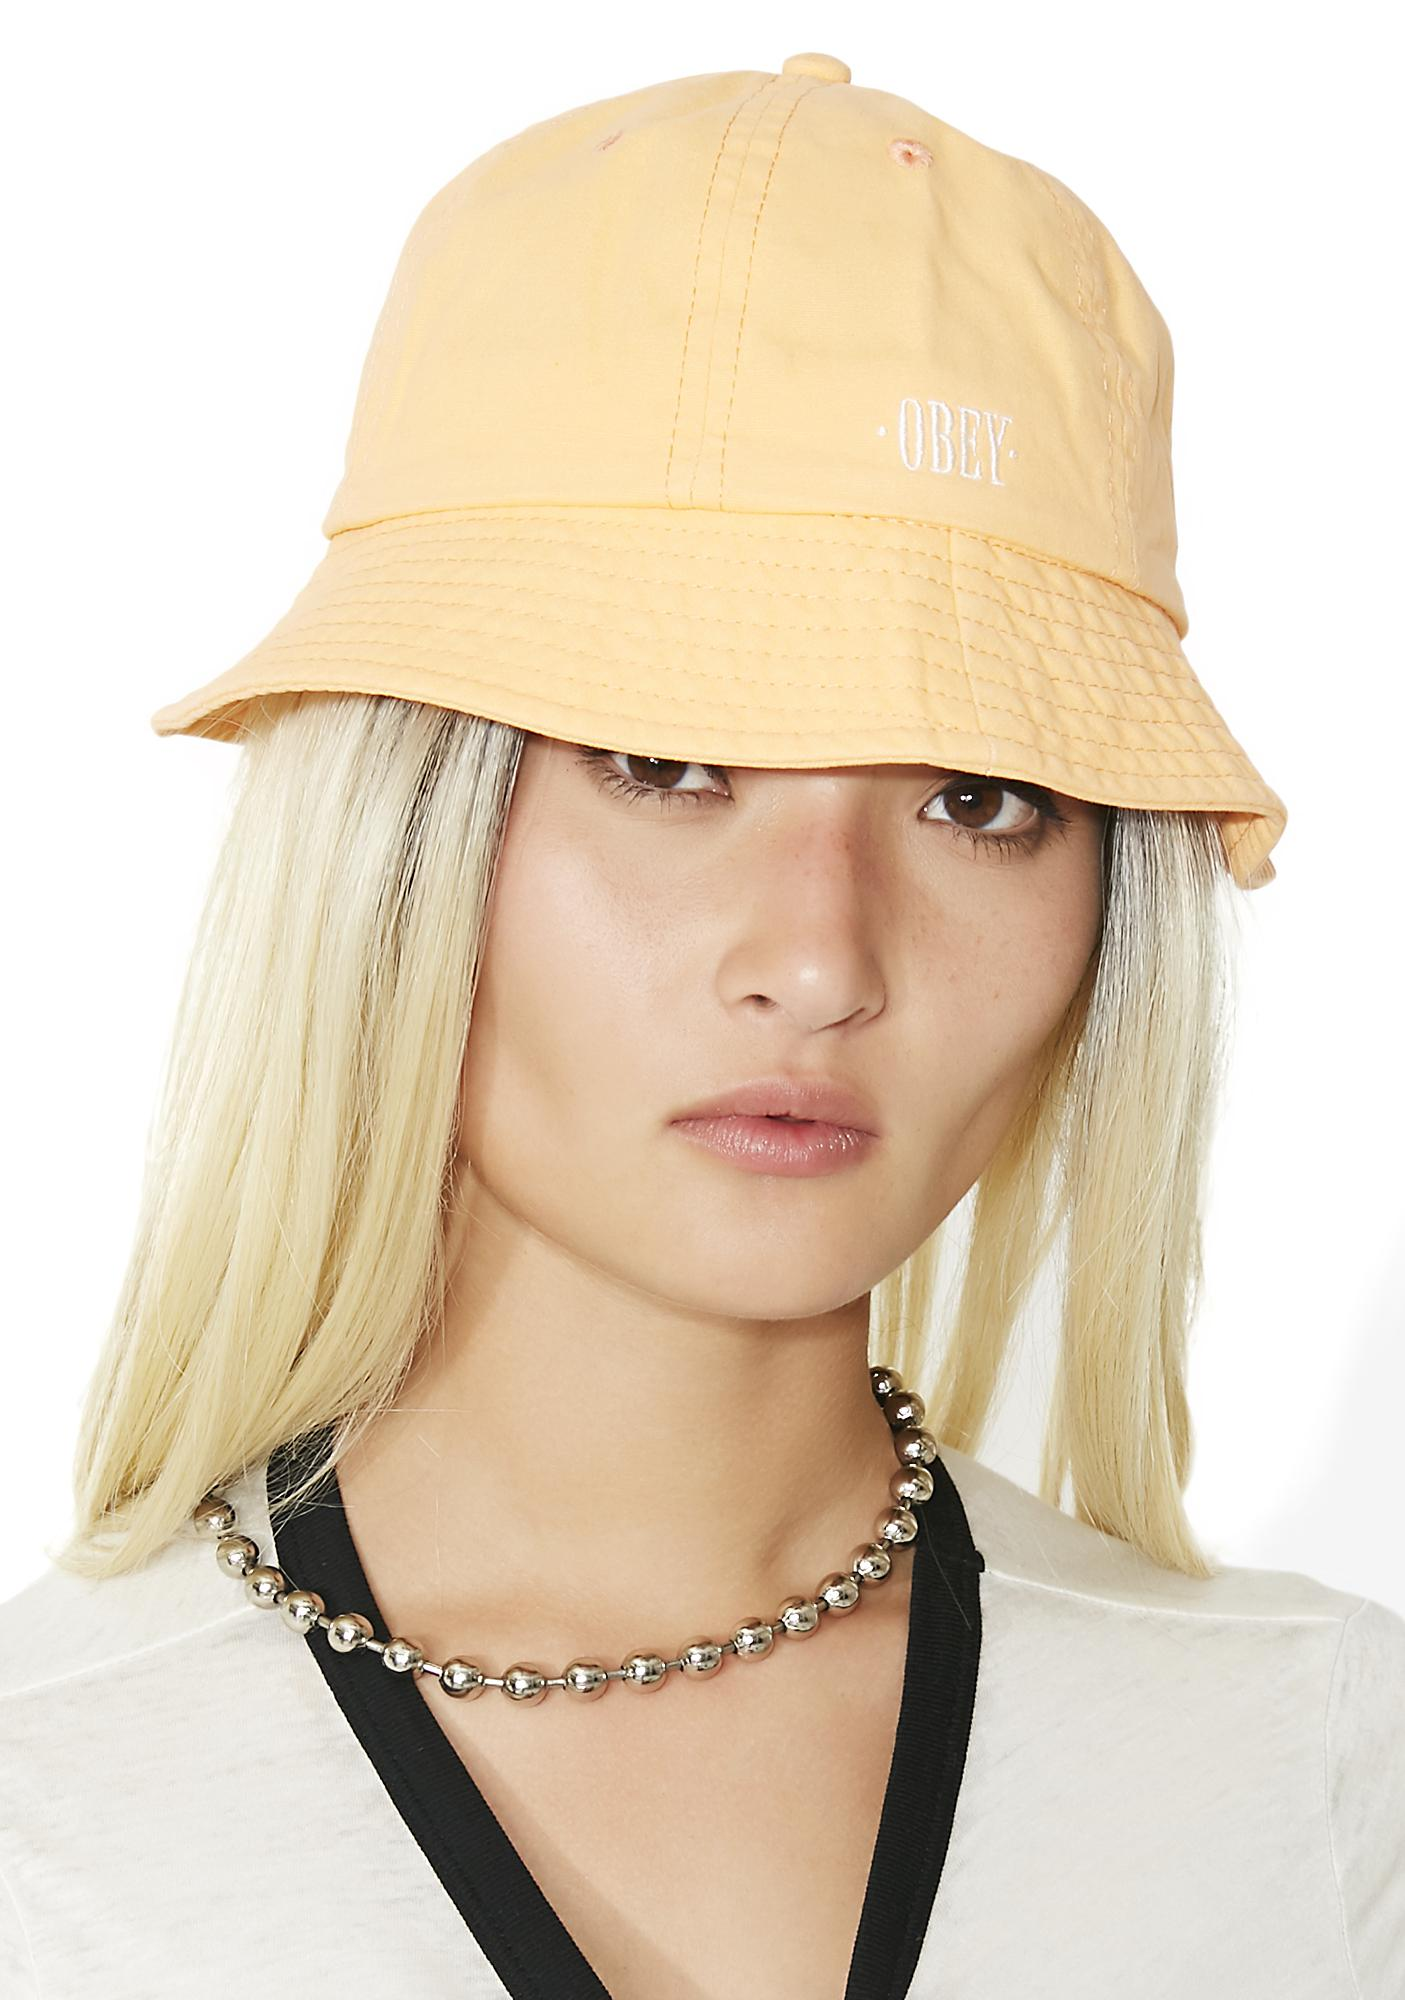 Obey Endless Bucket Hat